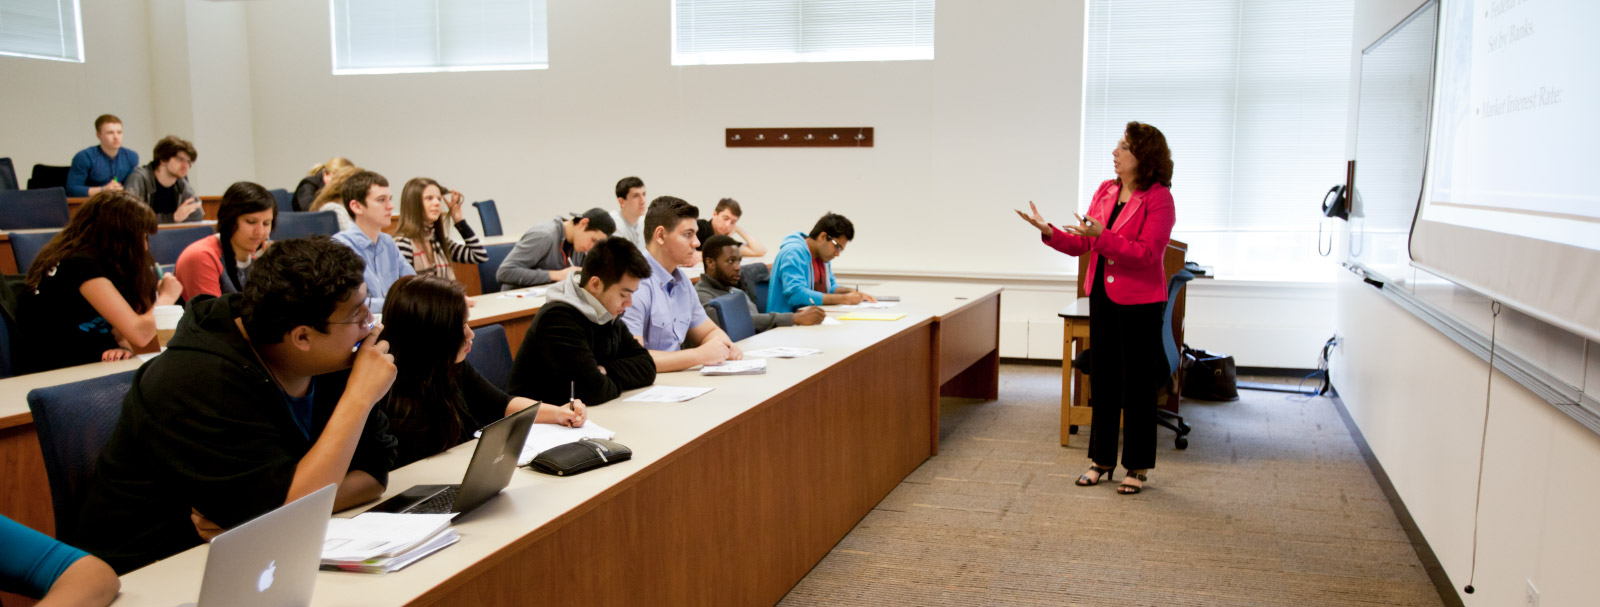 Caucasian professor lecturing in front of rows of students